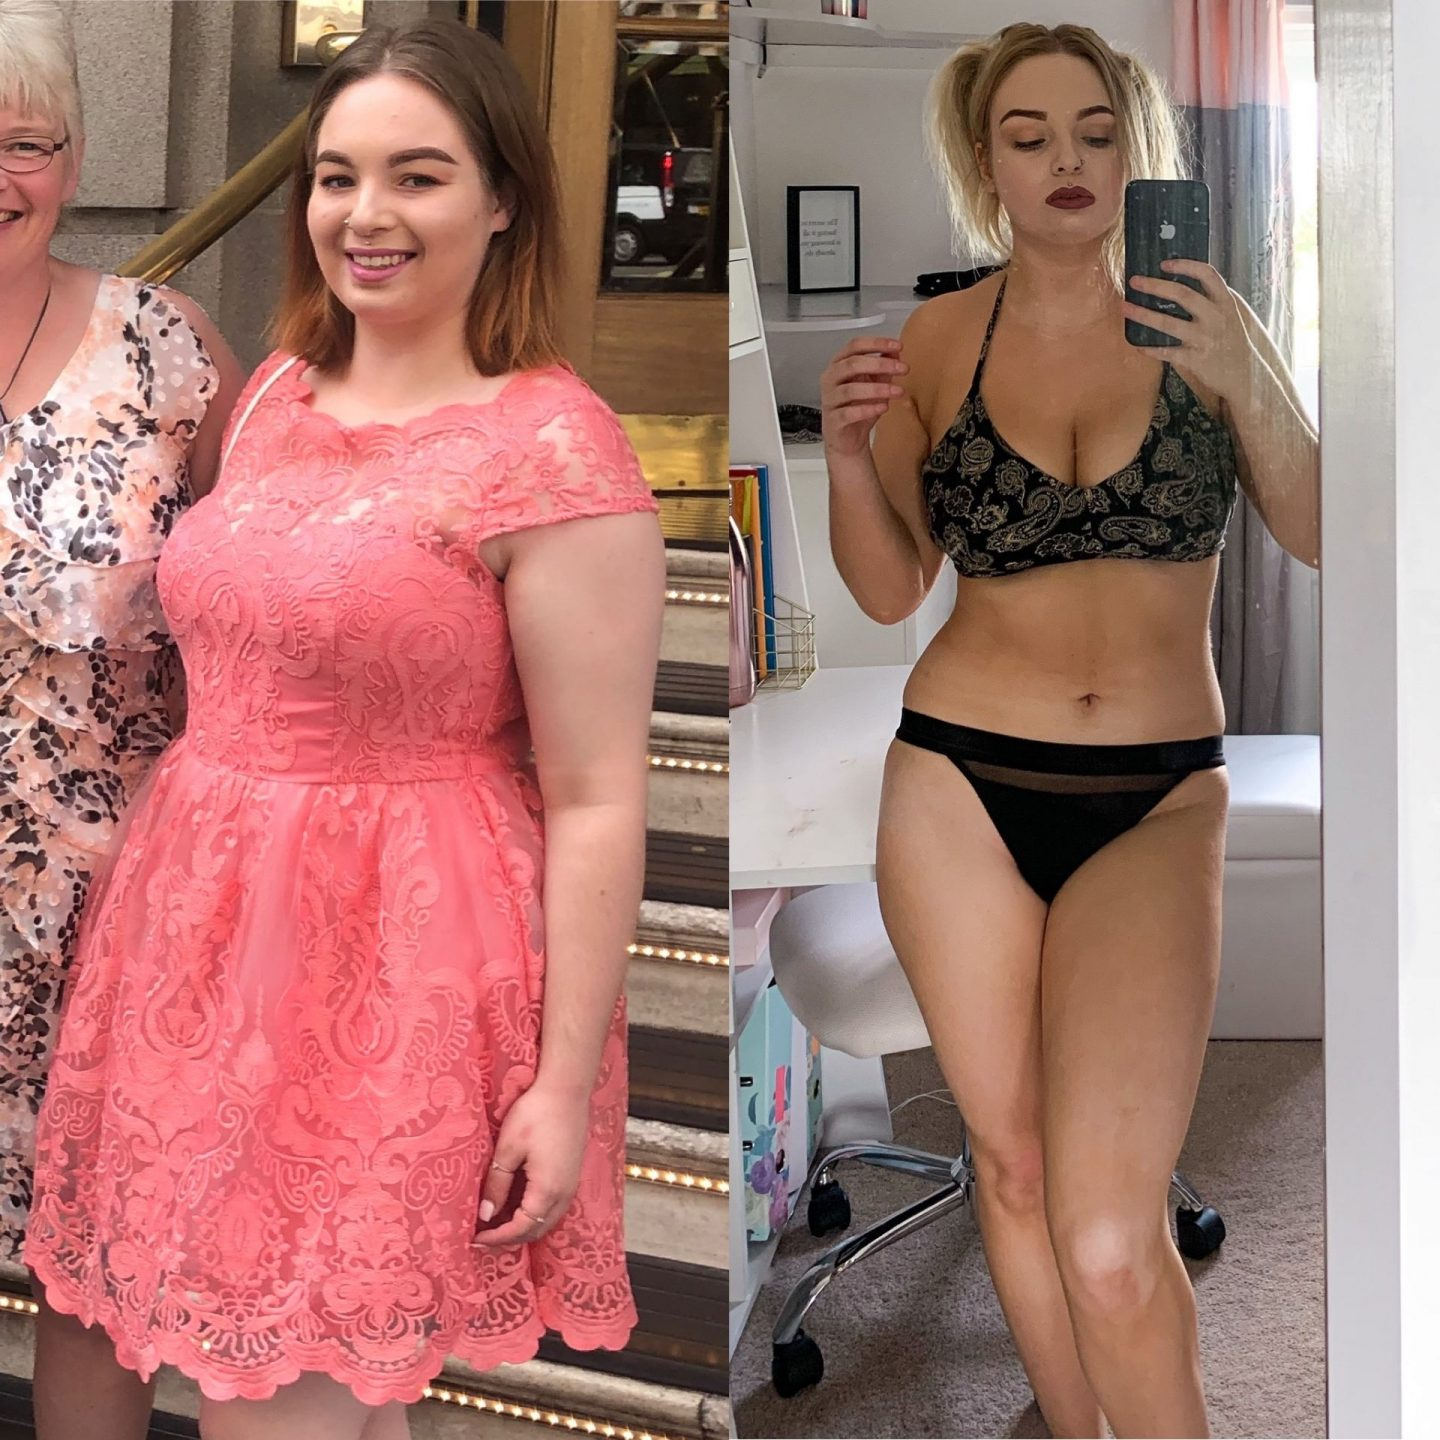 PCOS weight loss journey transformation picture